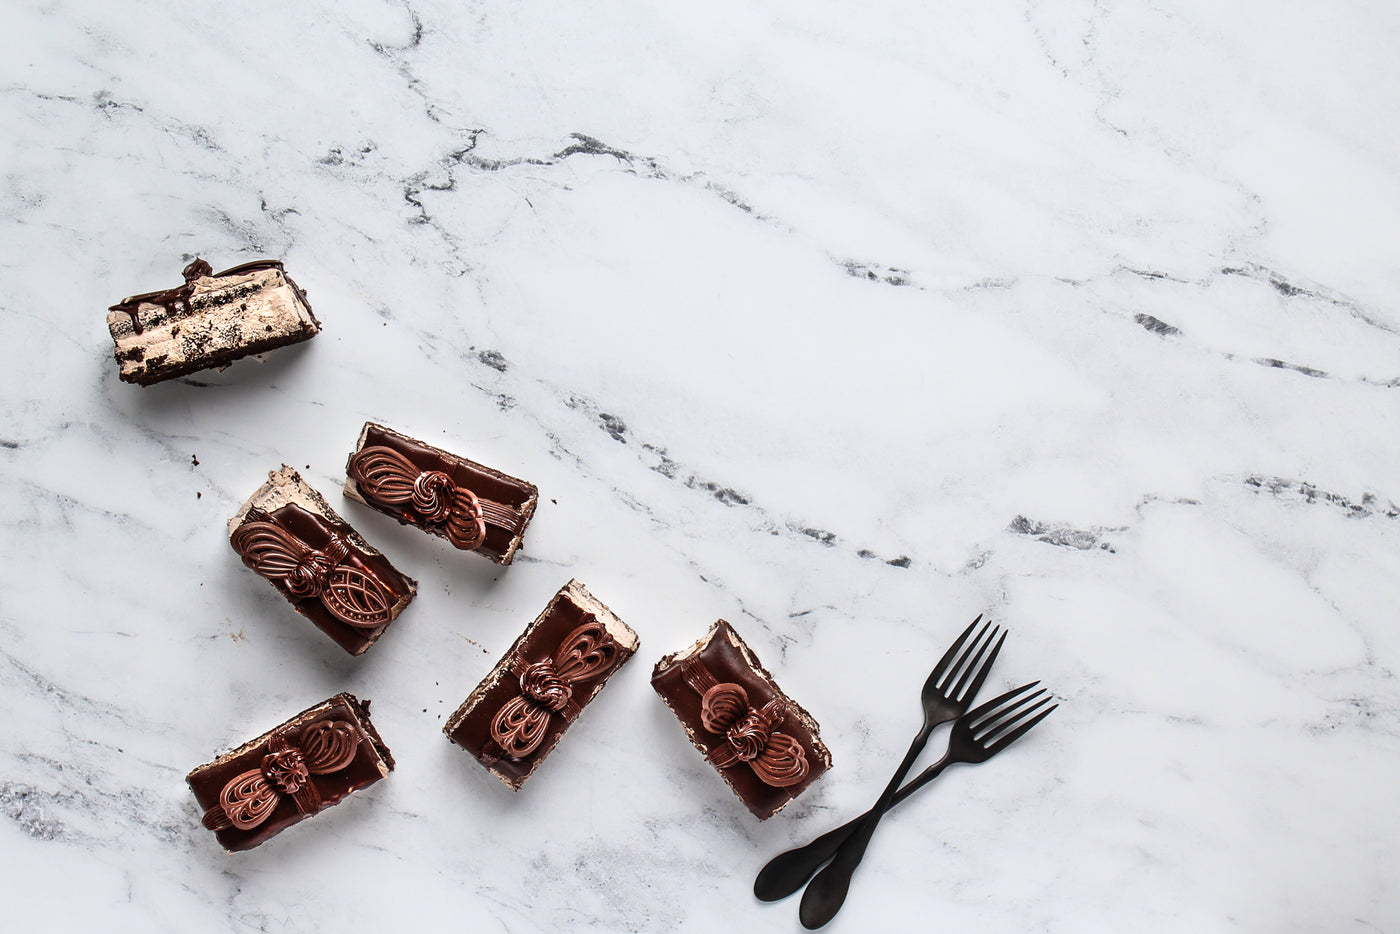 Marble Photography Backdrop 2 ft x 3 ft board | 3 mm thick with little chocolate cakes and forks